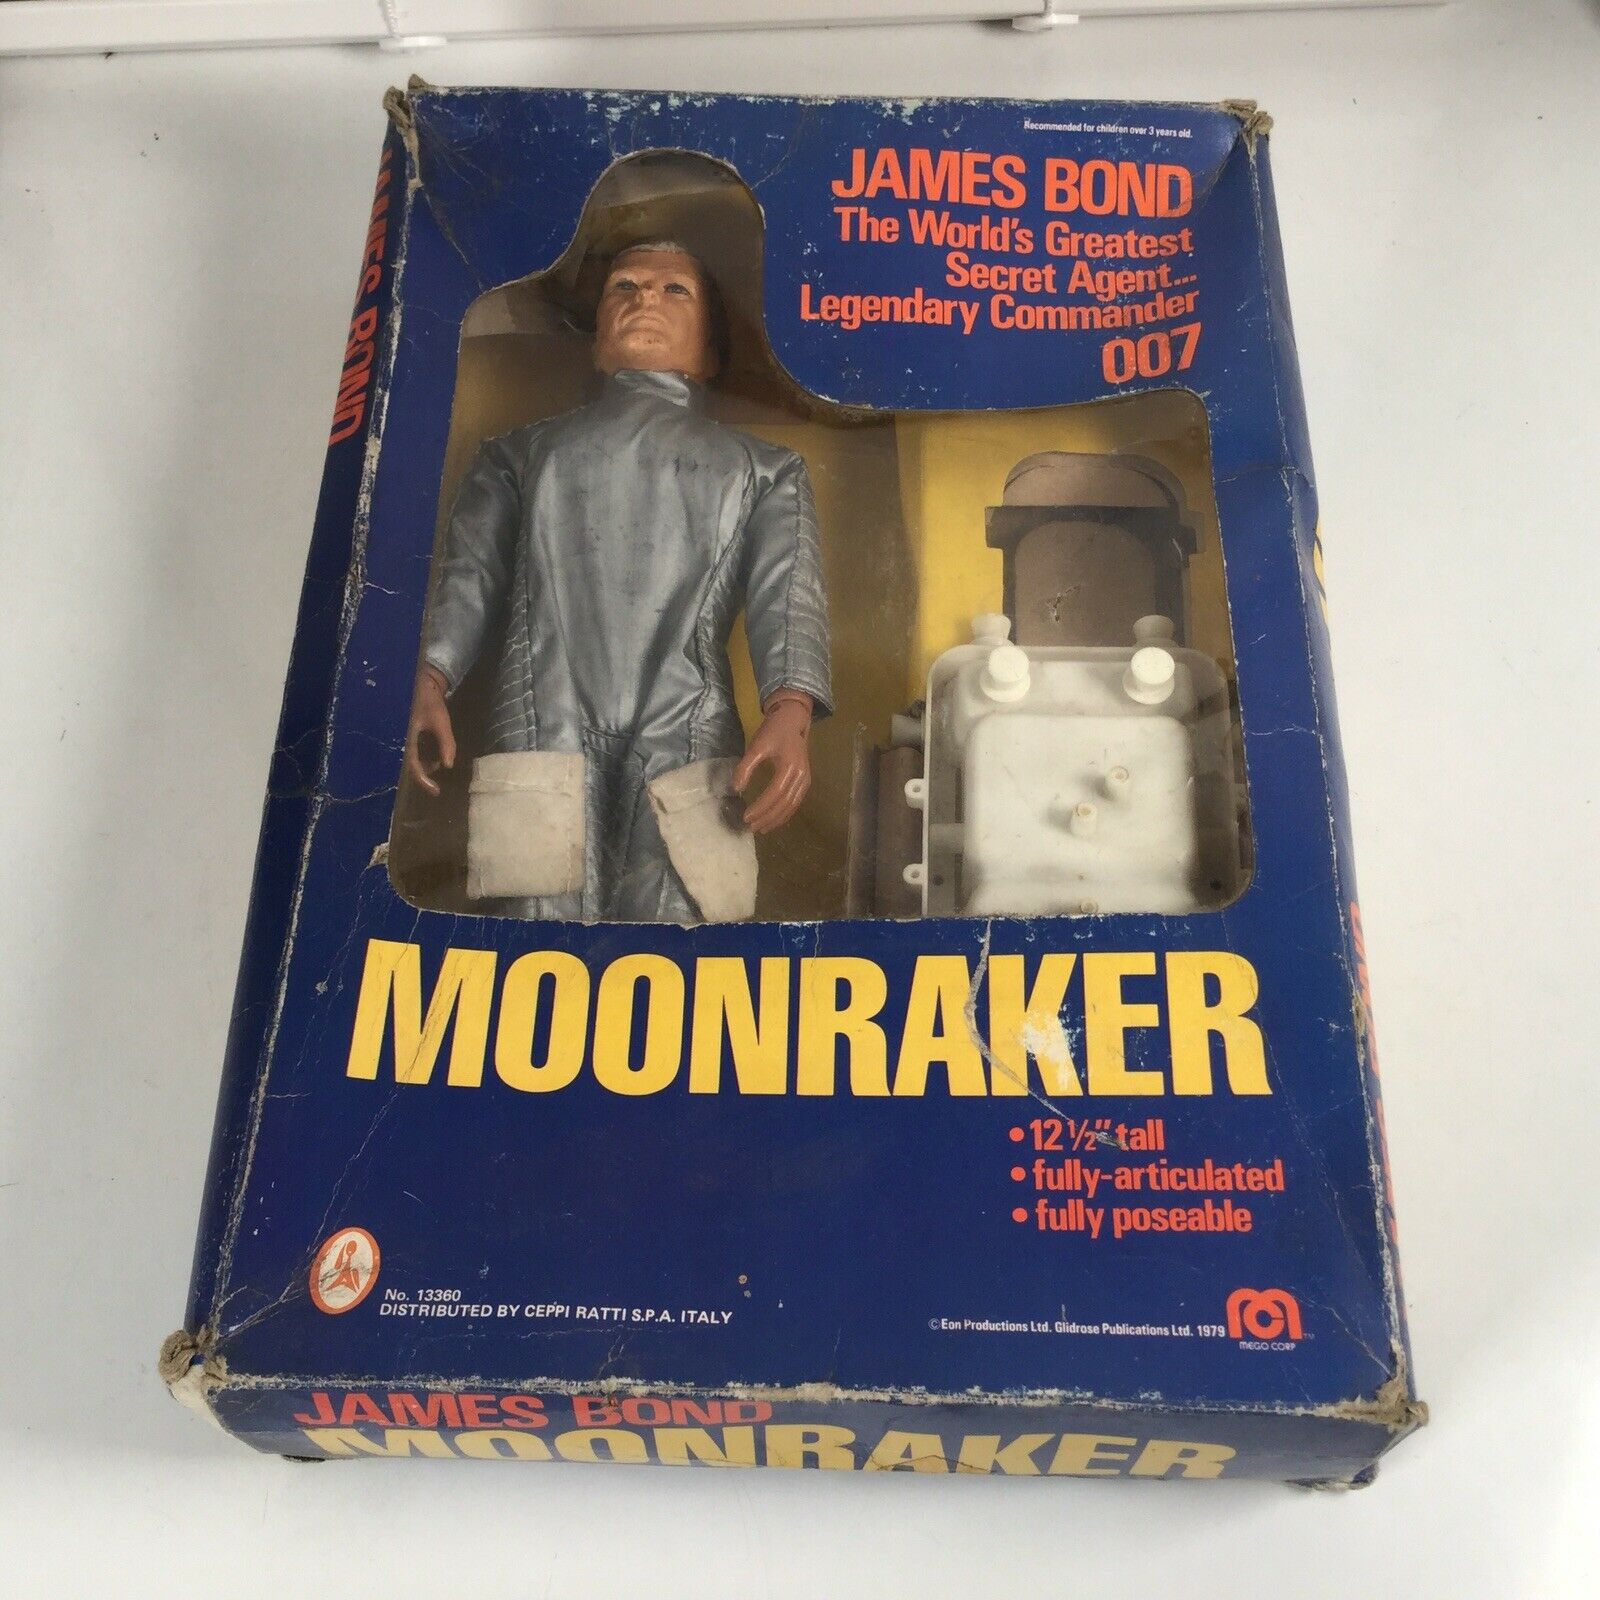 Mego Corp James Bond Bond Bond 007 Moonraker Action Figure Boxed Nice Condition db0944